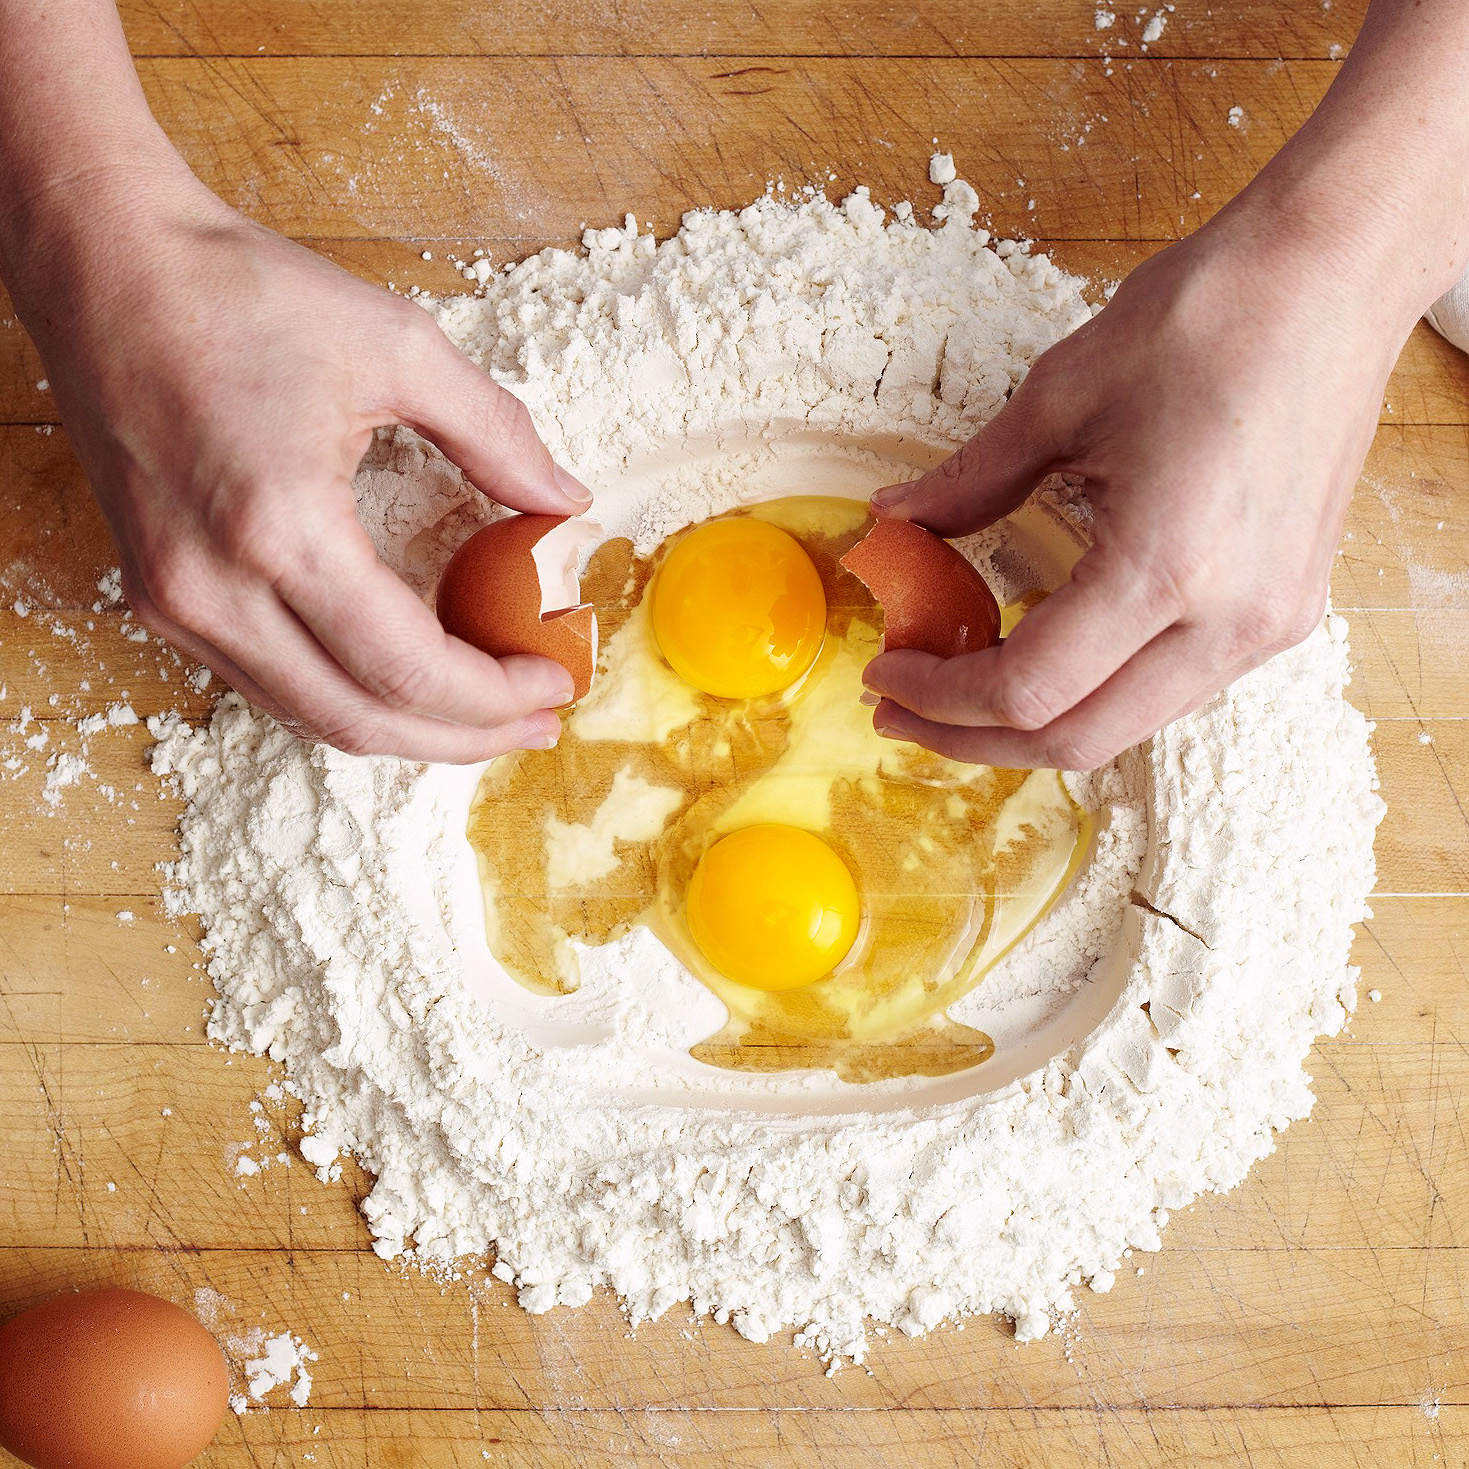 cracking eggs into four well